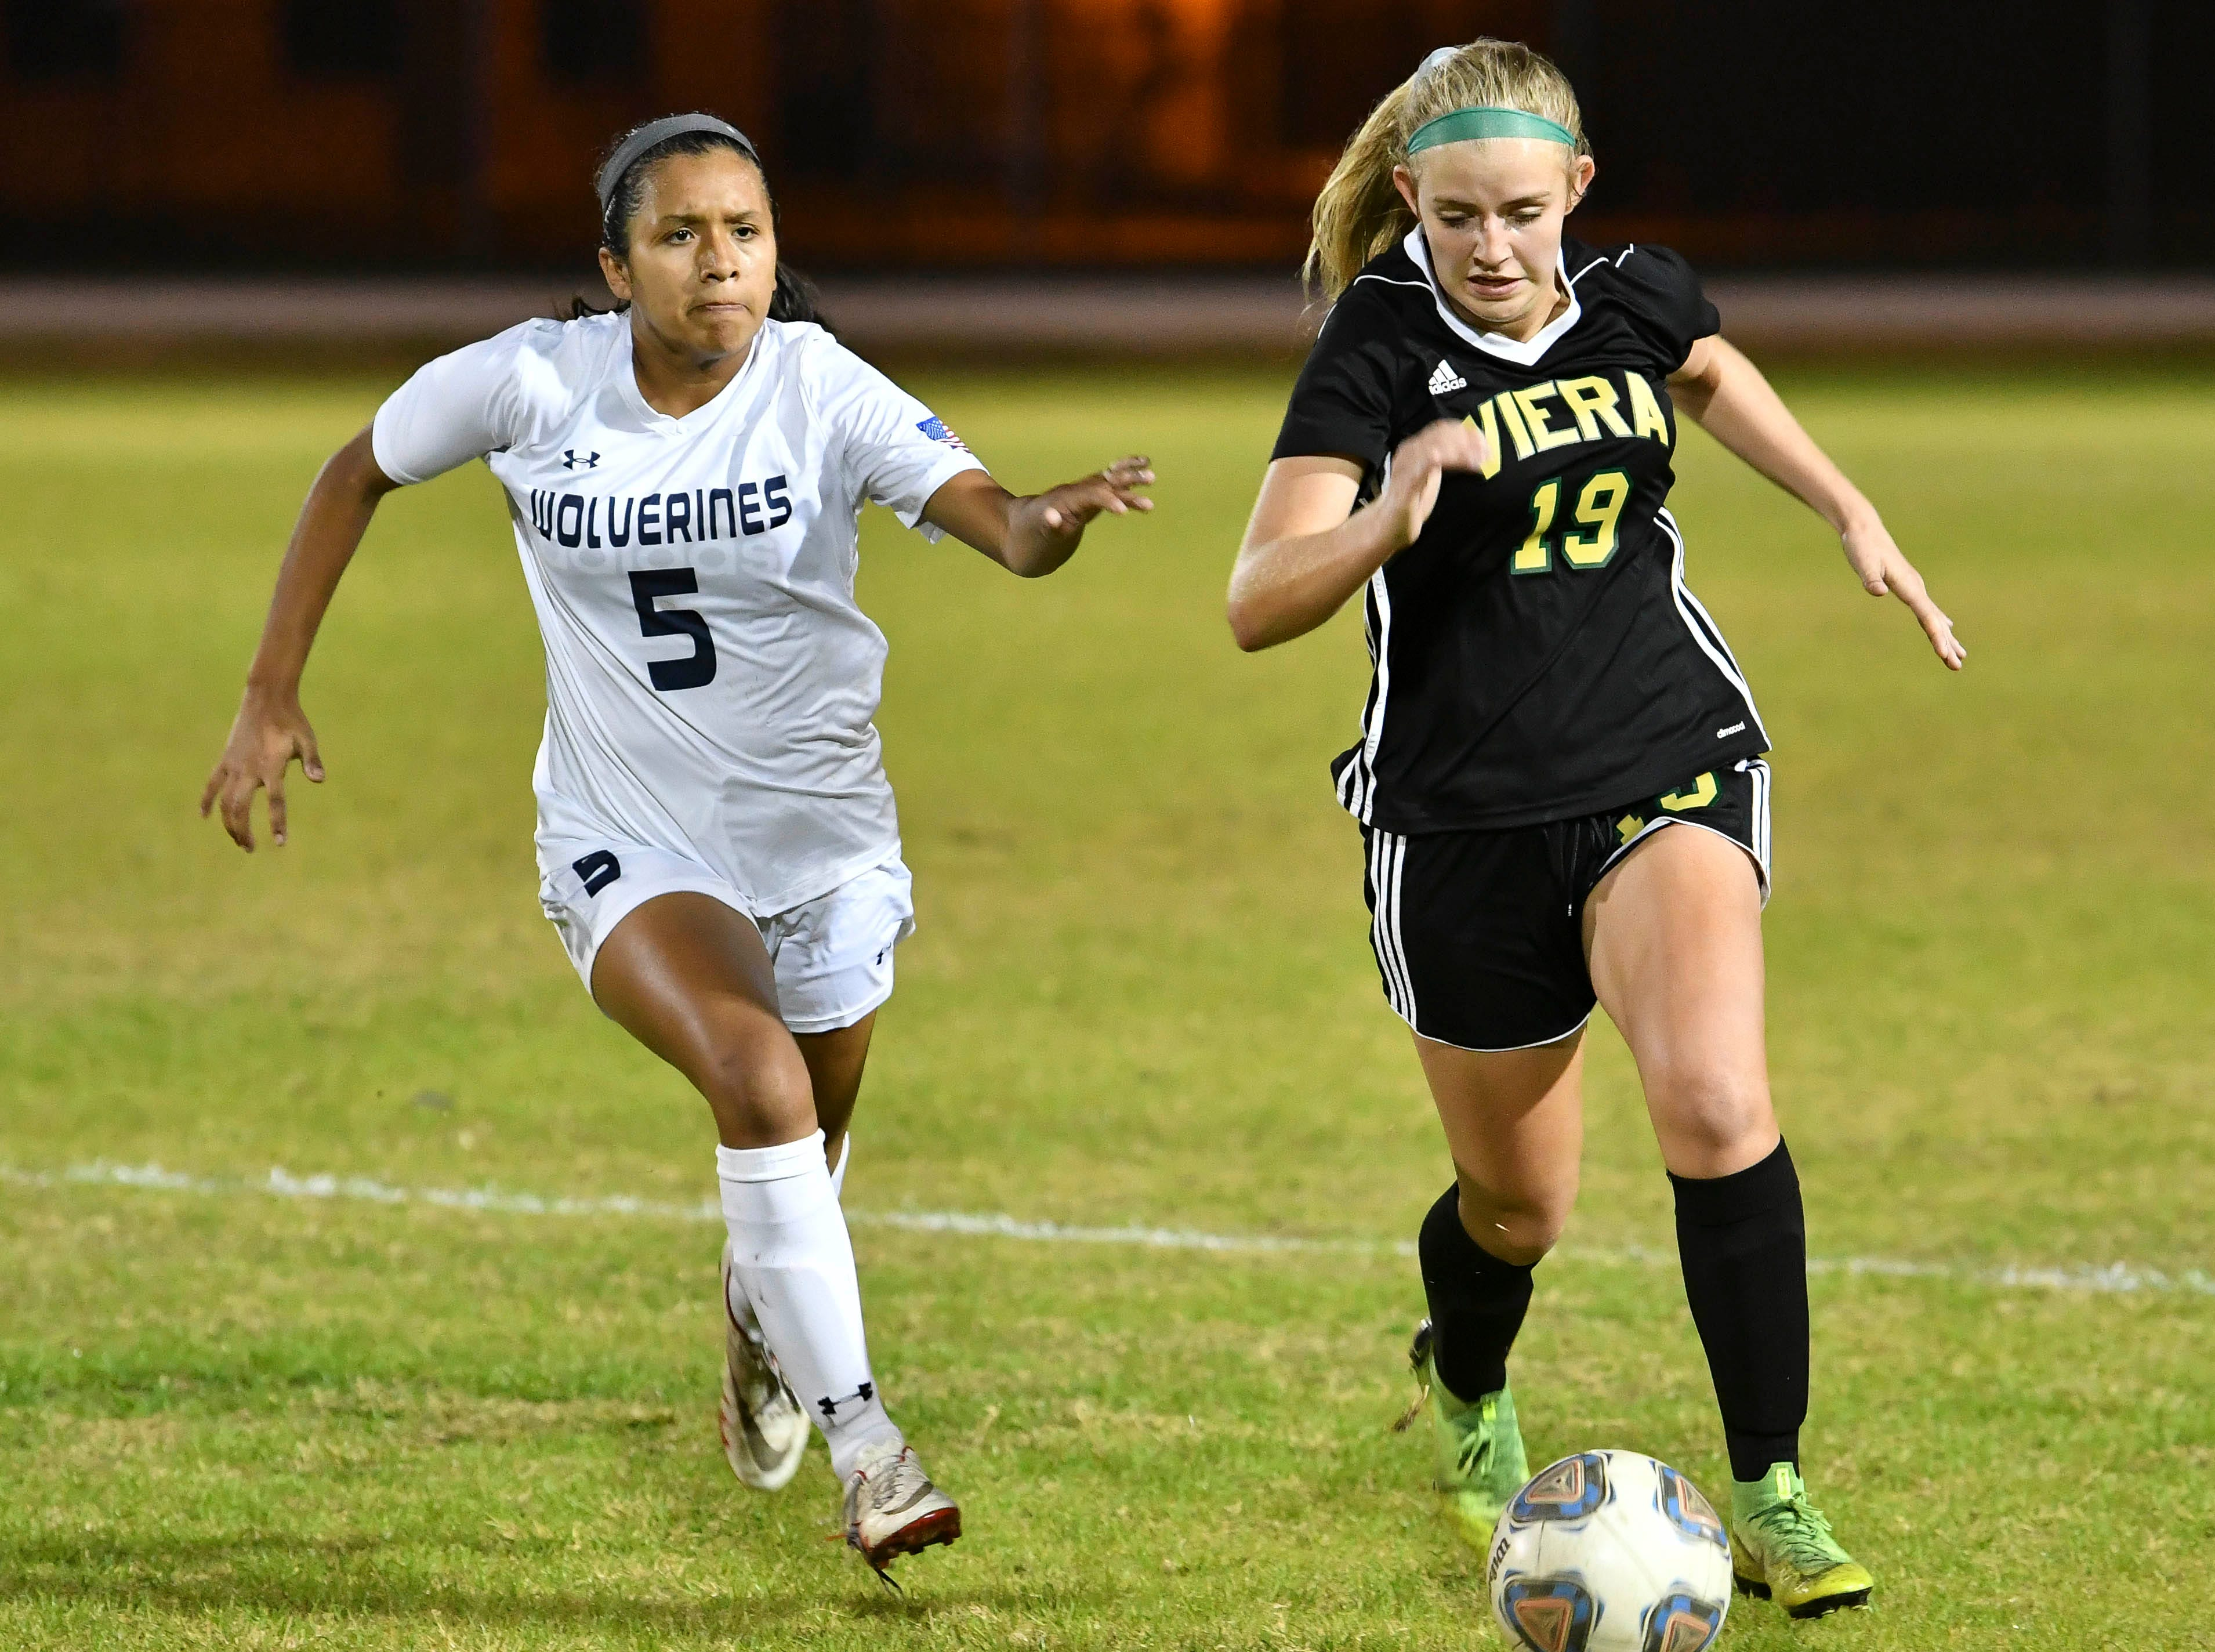 Kristhine Verastegui of Windermere chases Mai Jensen of Viera during Tuesday's Regional Quarterfinal game at Viera High School